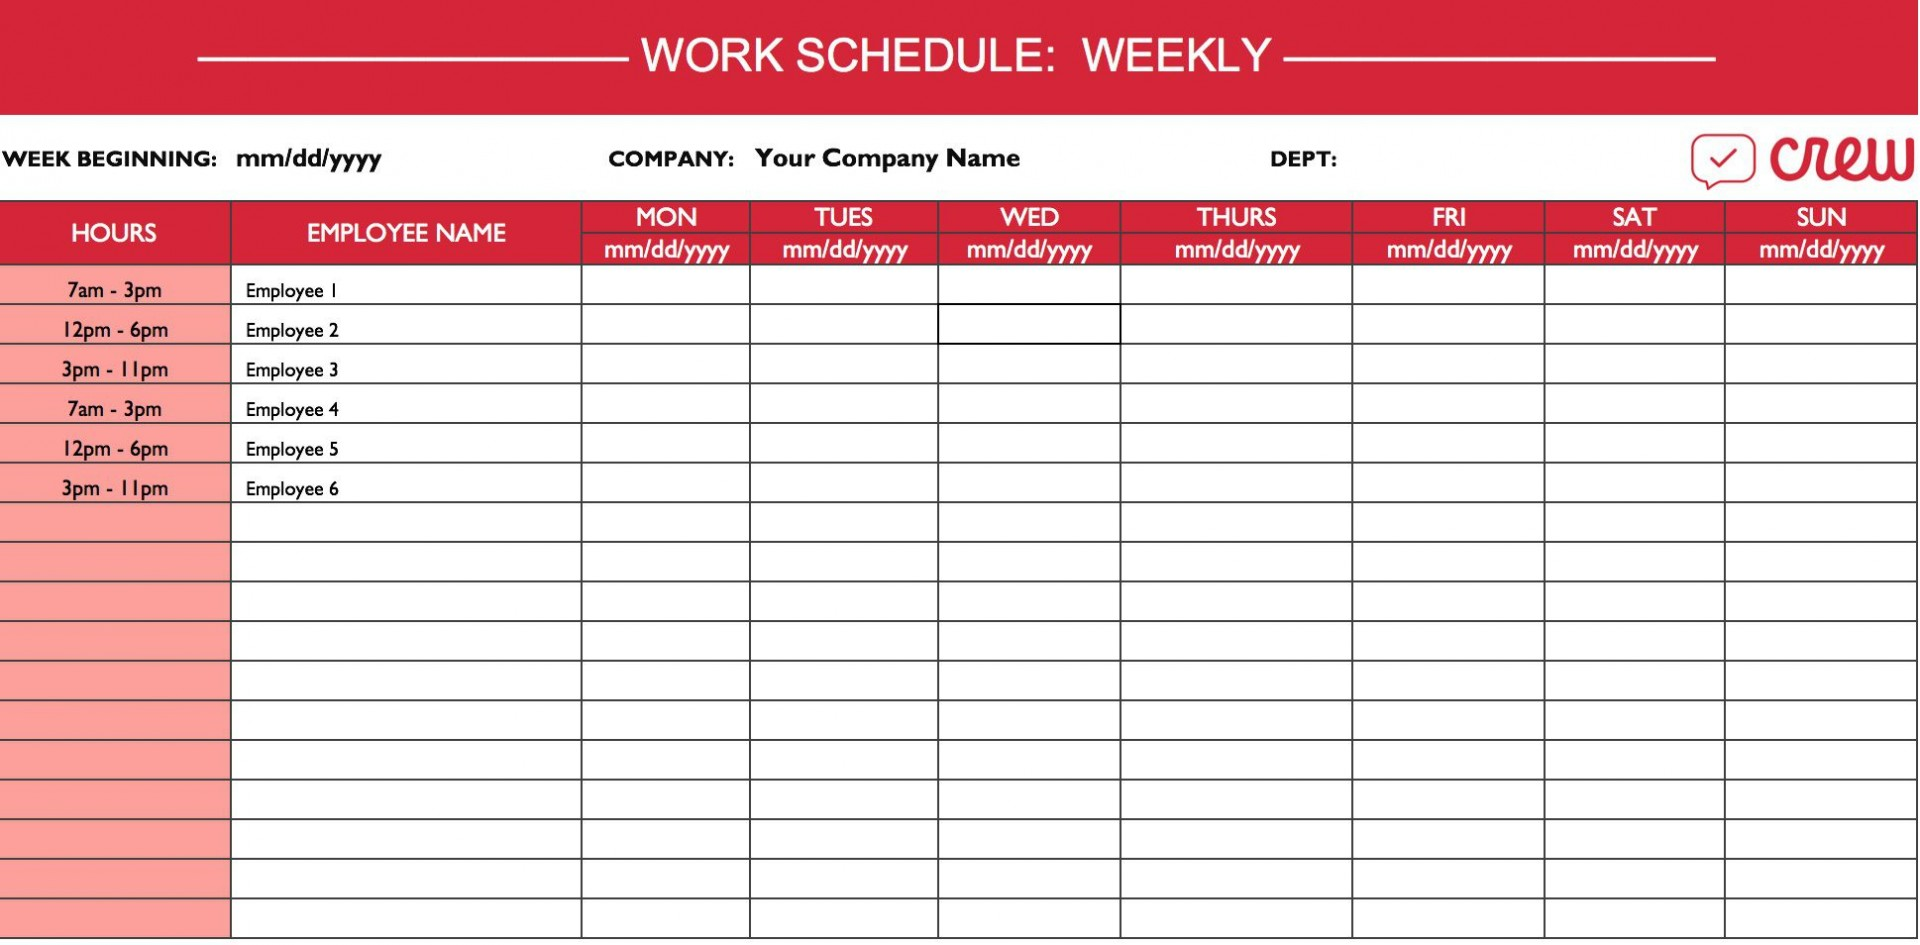 008 Amazing Weekly Work Schedule Template Highest Quality  Monthly Excel Free Download For Multiple Employee Plan1920